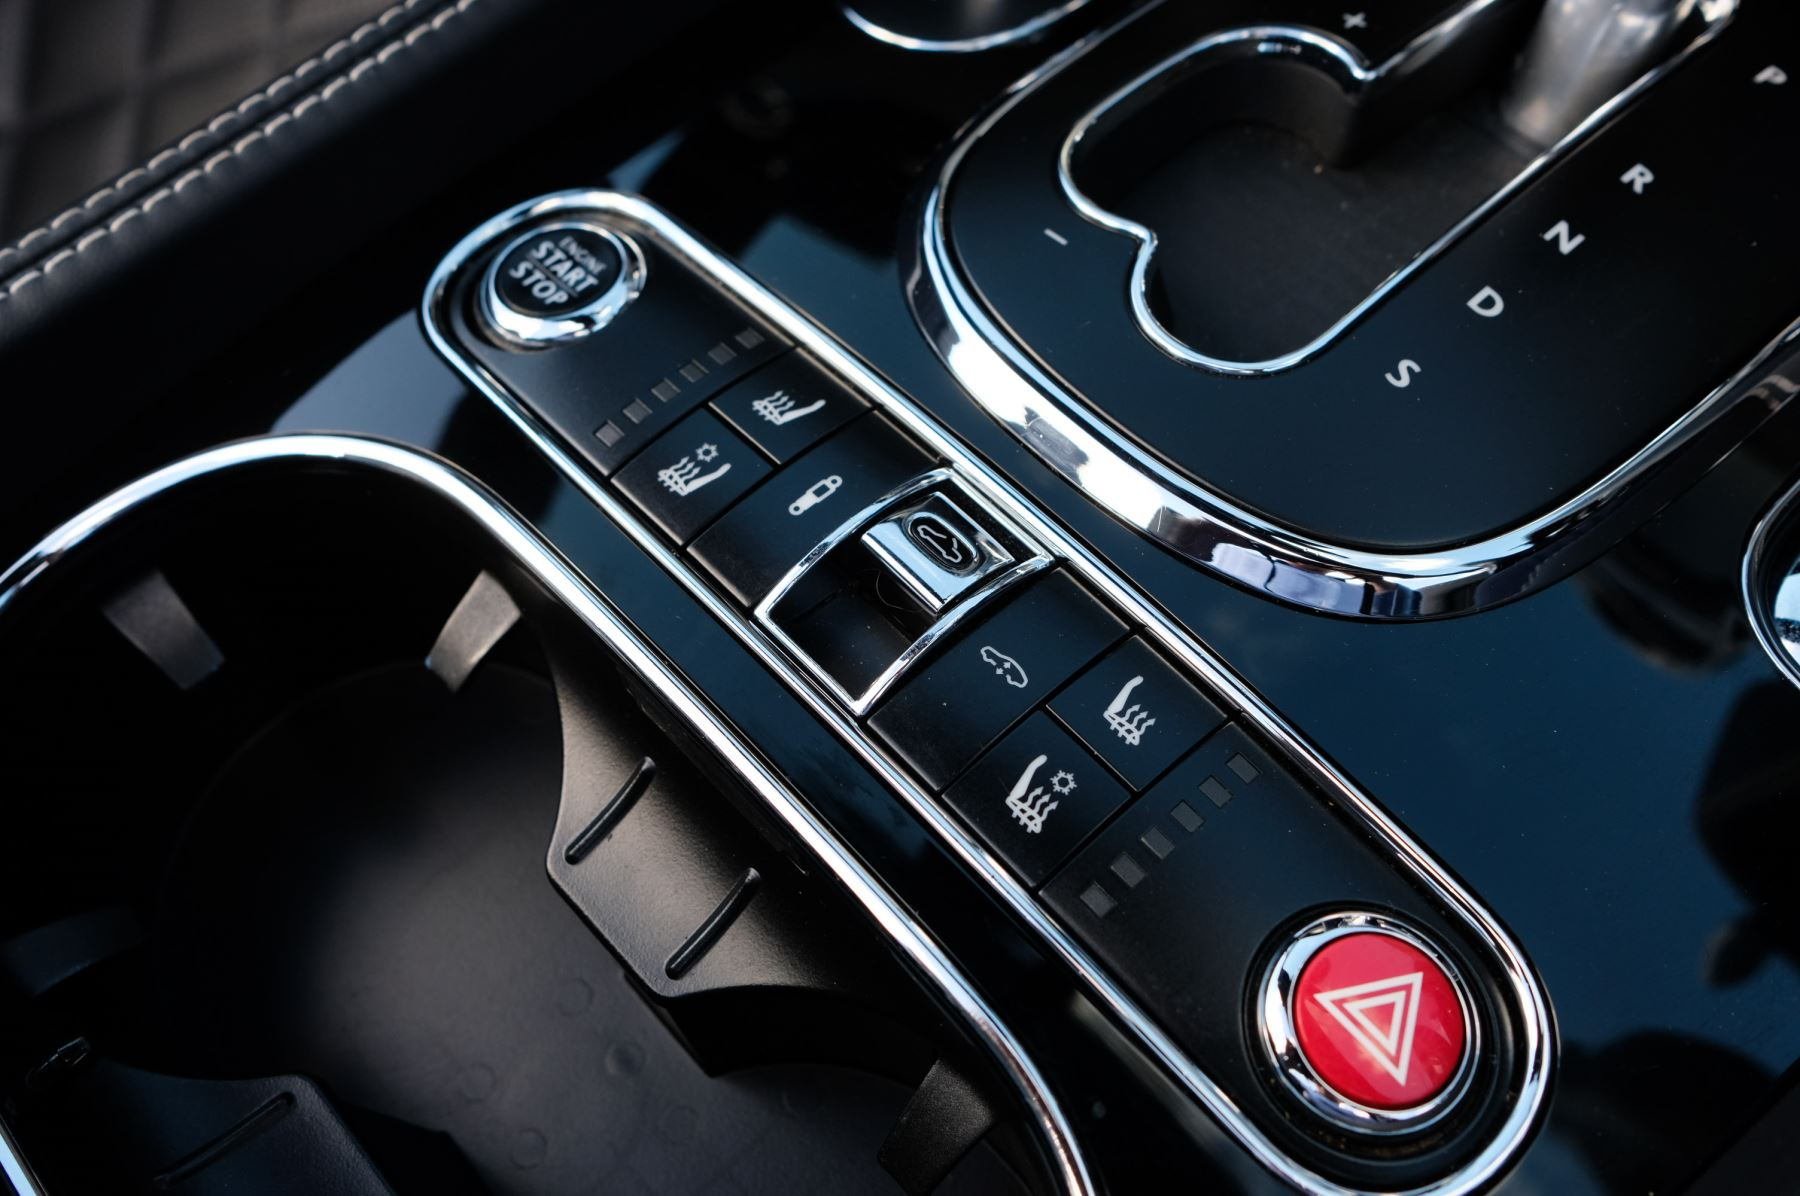 Bentley Continental GTC 4.0 V8 S Mulliner Driving Spec - Ventilated Front Seats with Massage Function image 25